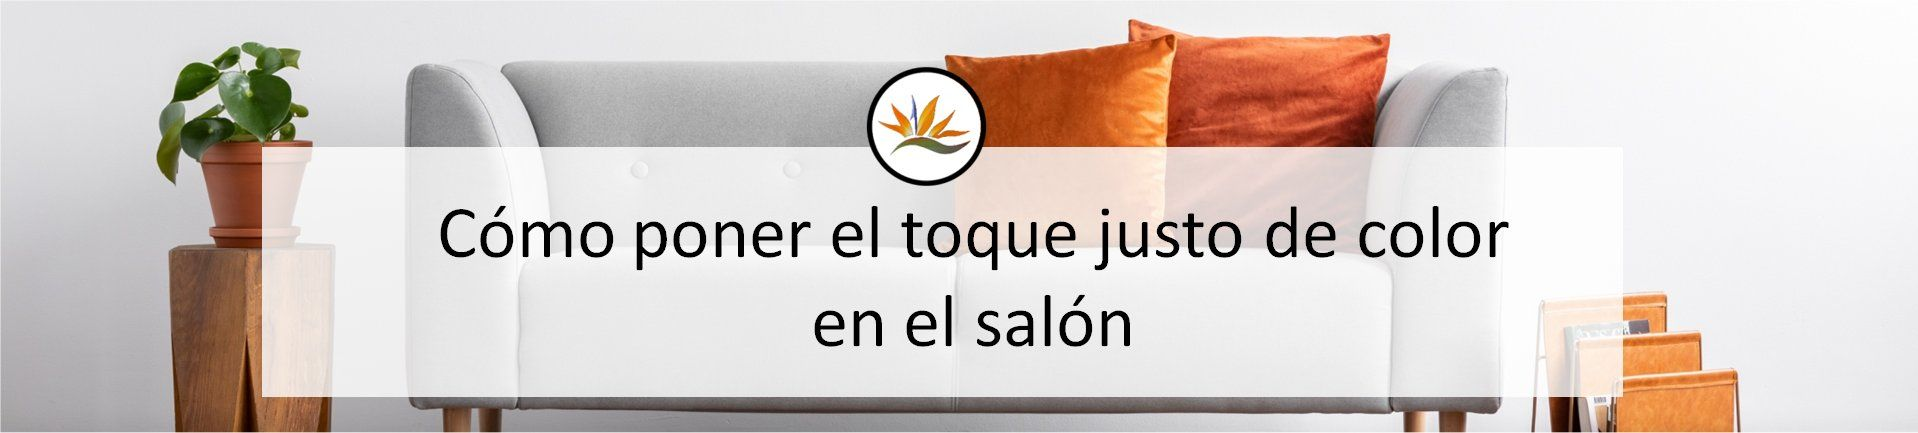 cabecera toque justo de color en el salon